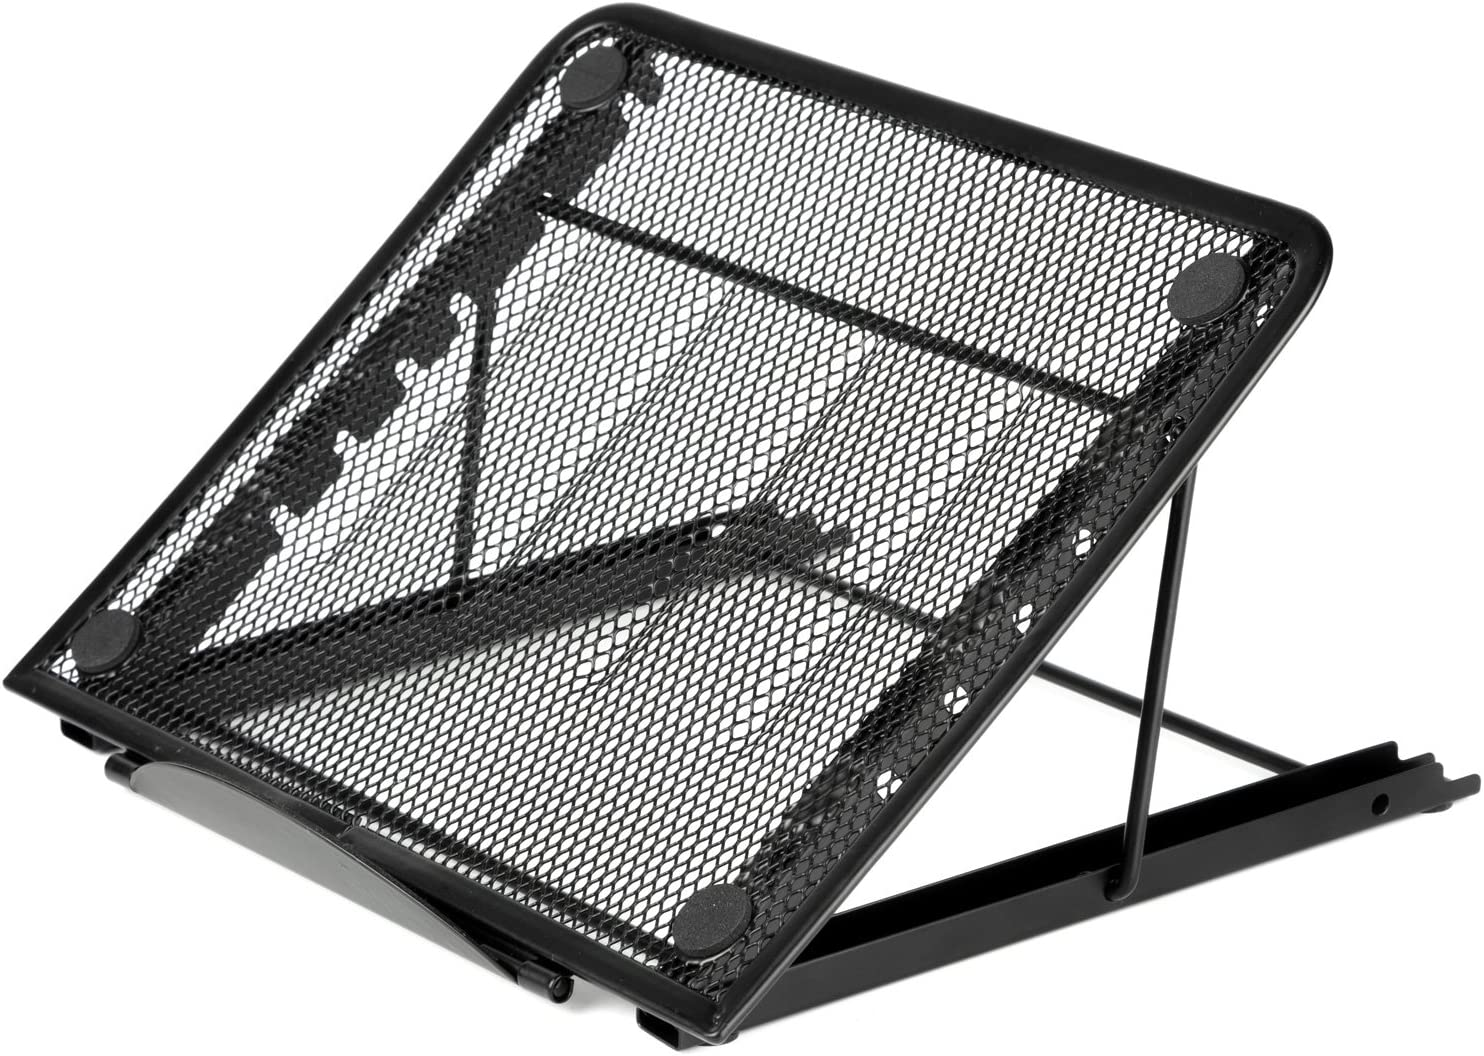 Halter Mesh Ventilated Adjustable Laptop Stand for Laptop/Notebook/iPad/Tablet and More - Black